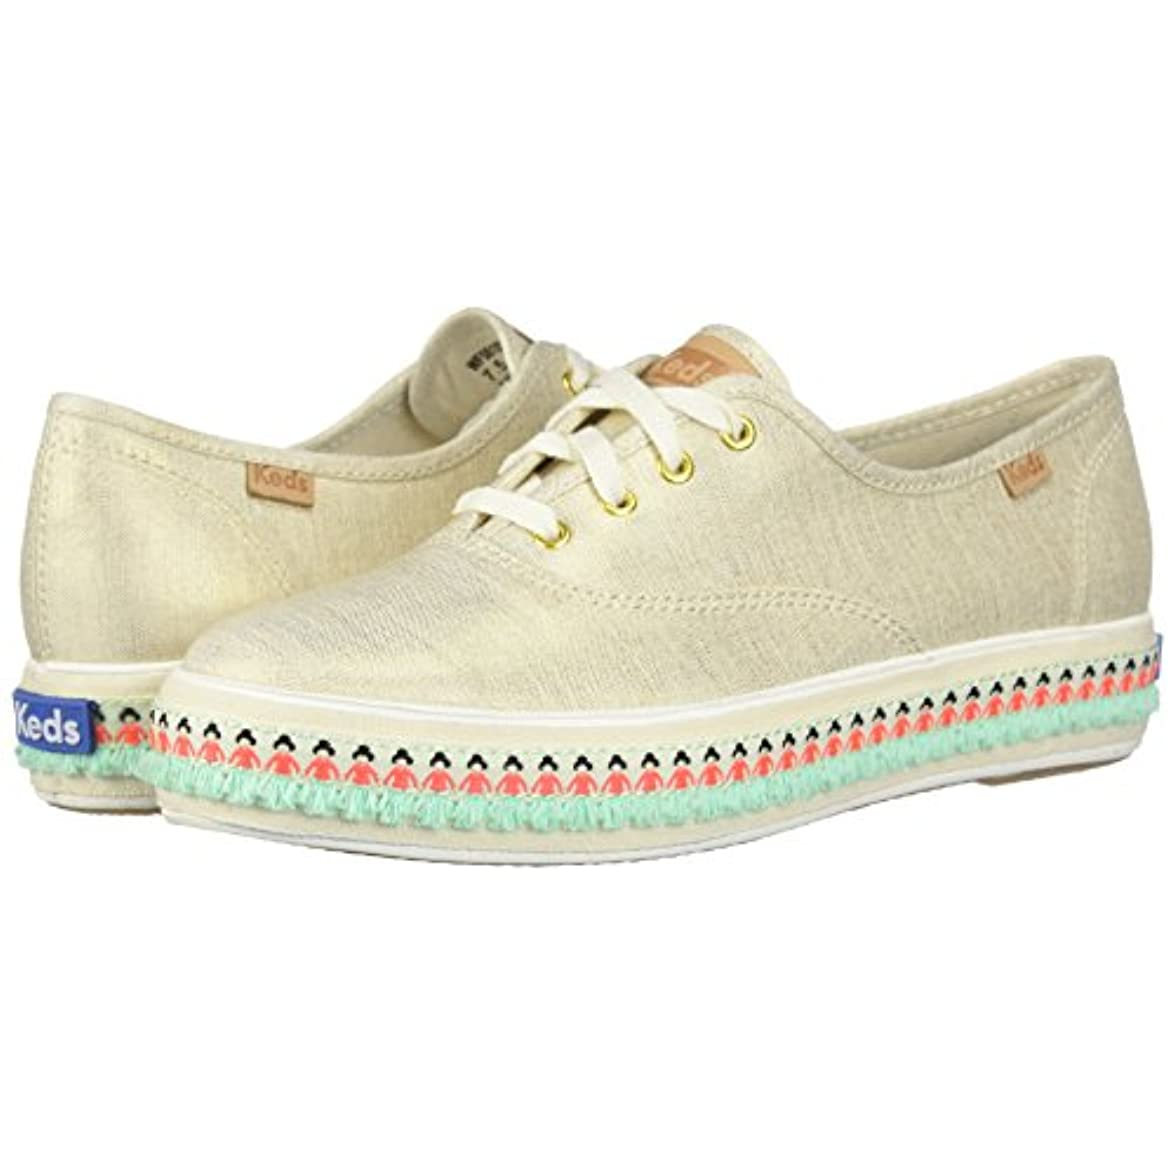 Keds Women's Anchor Canvas Sneakers